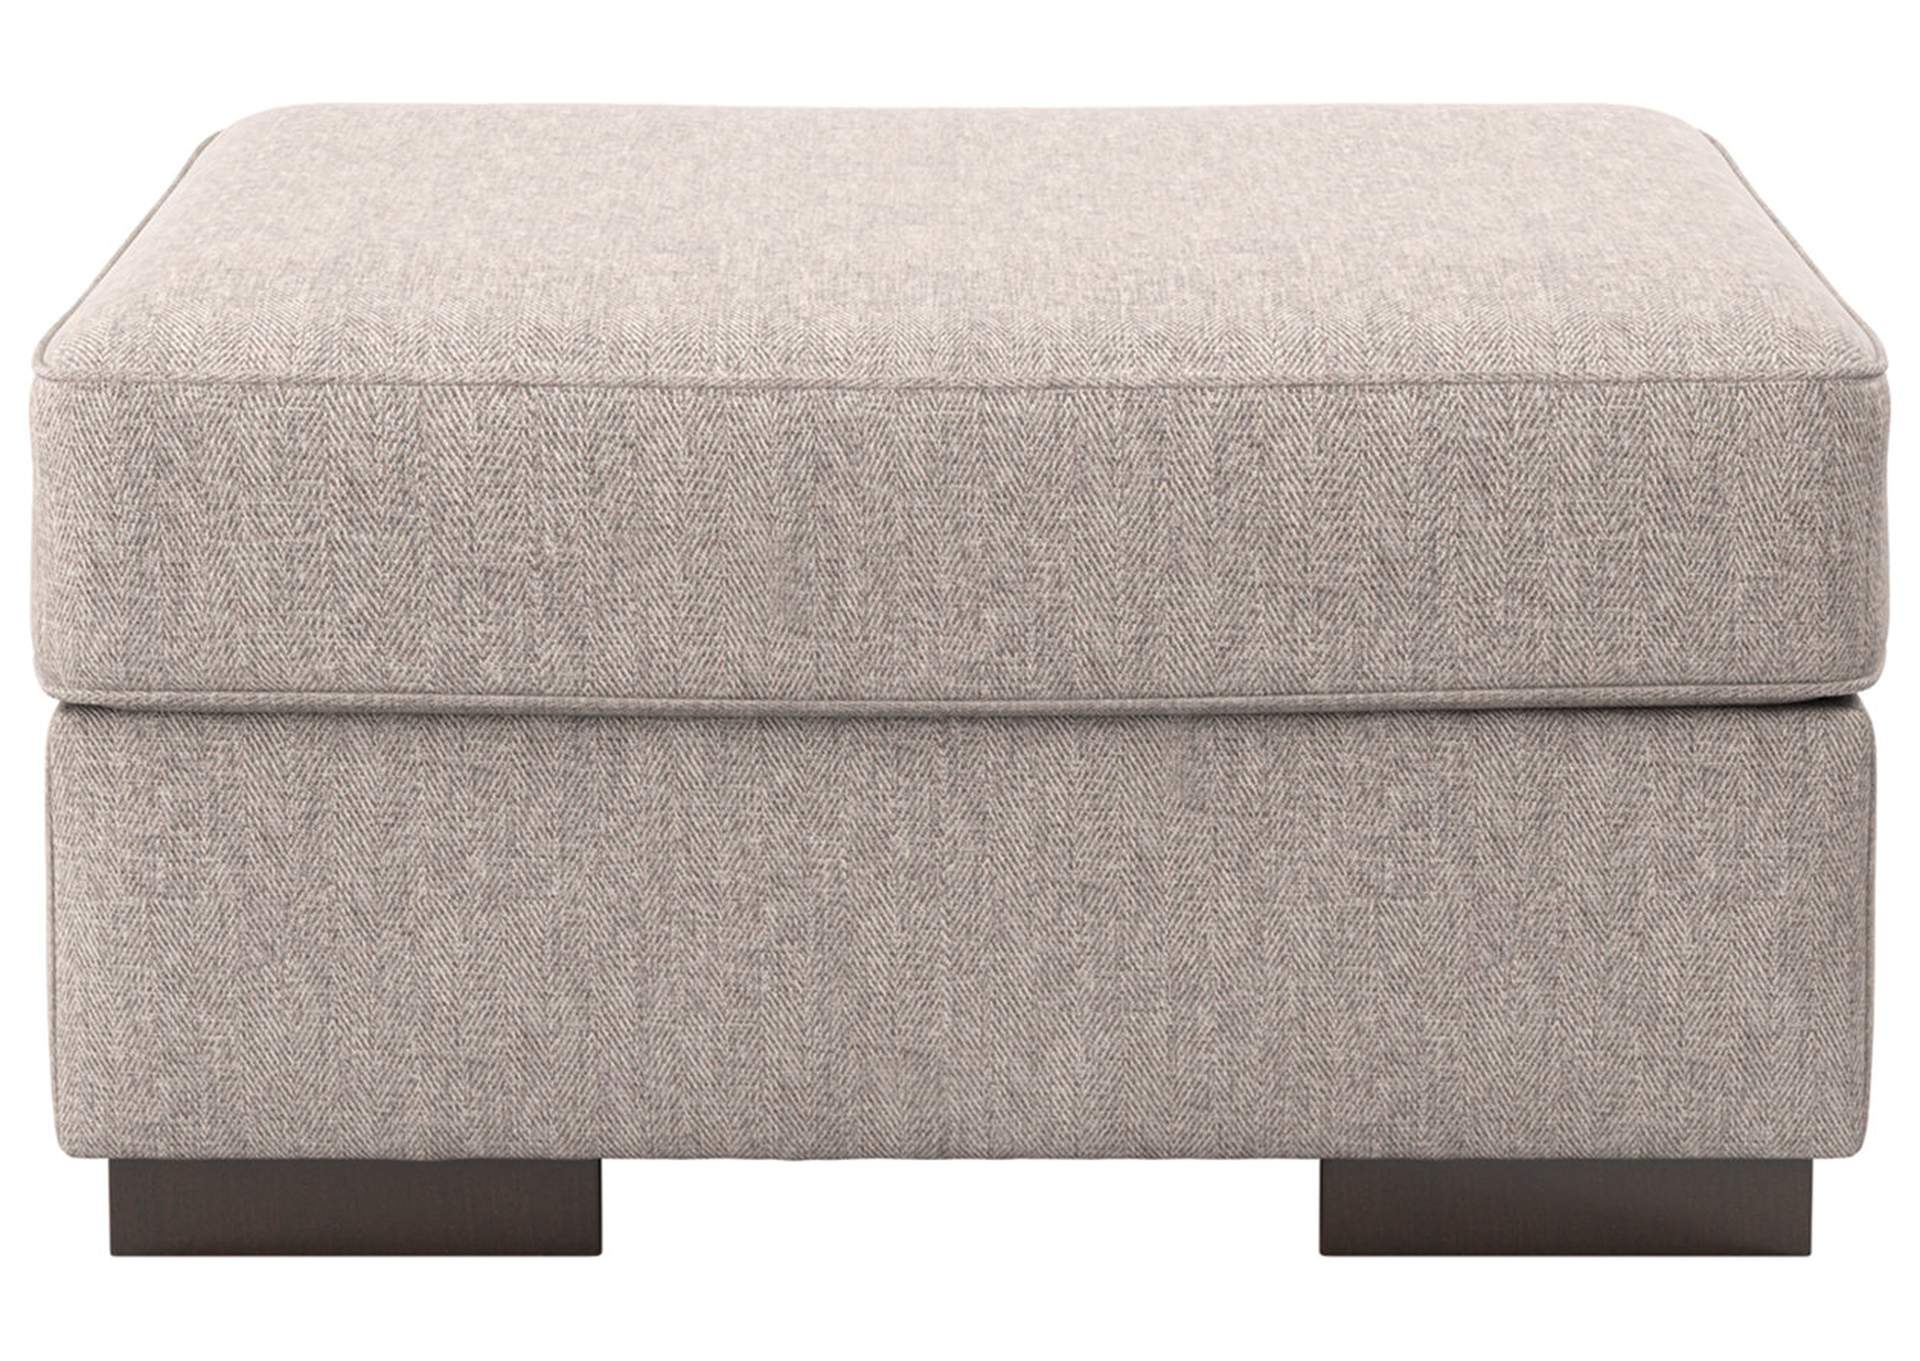 Ashlor Nuvella Slate Ottoman,Ashley